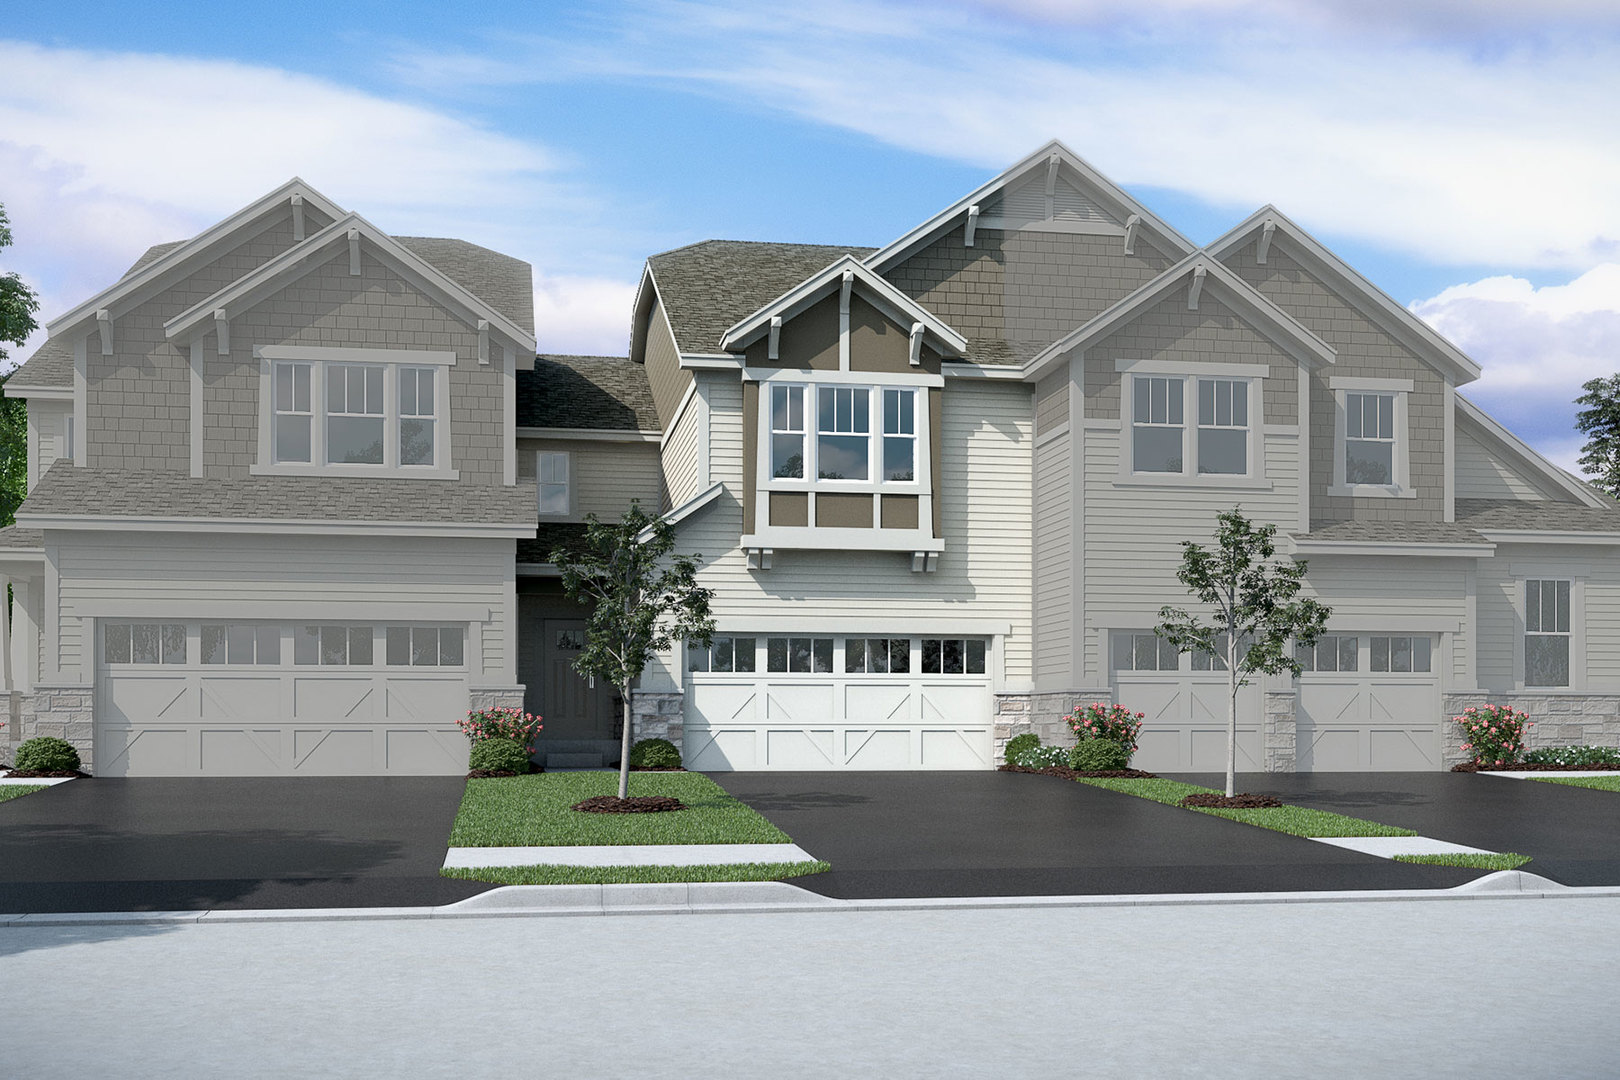 Photo for 511 Pershing - Lot #15.02 Court, Barrington, IL 60010 (MLS # 10673552)